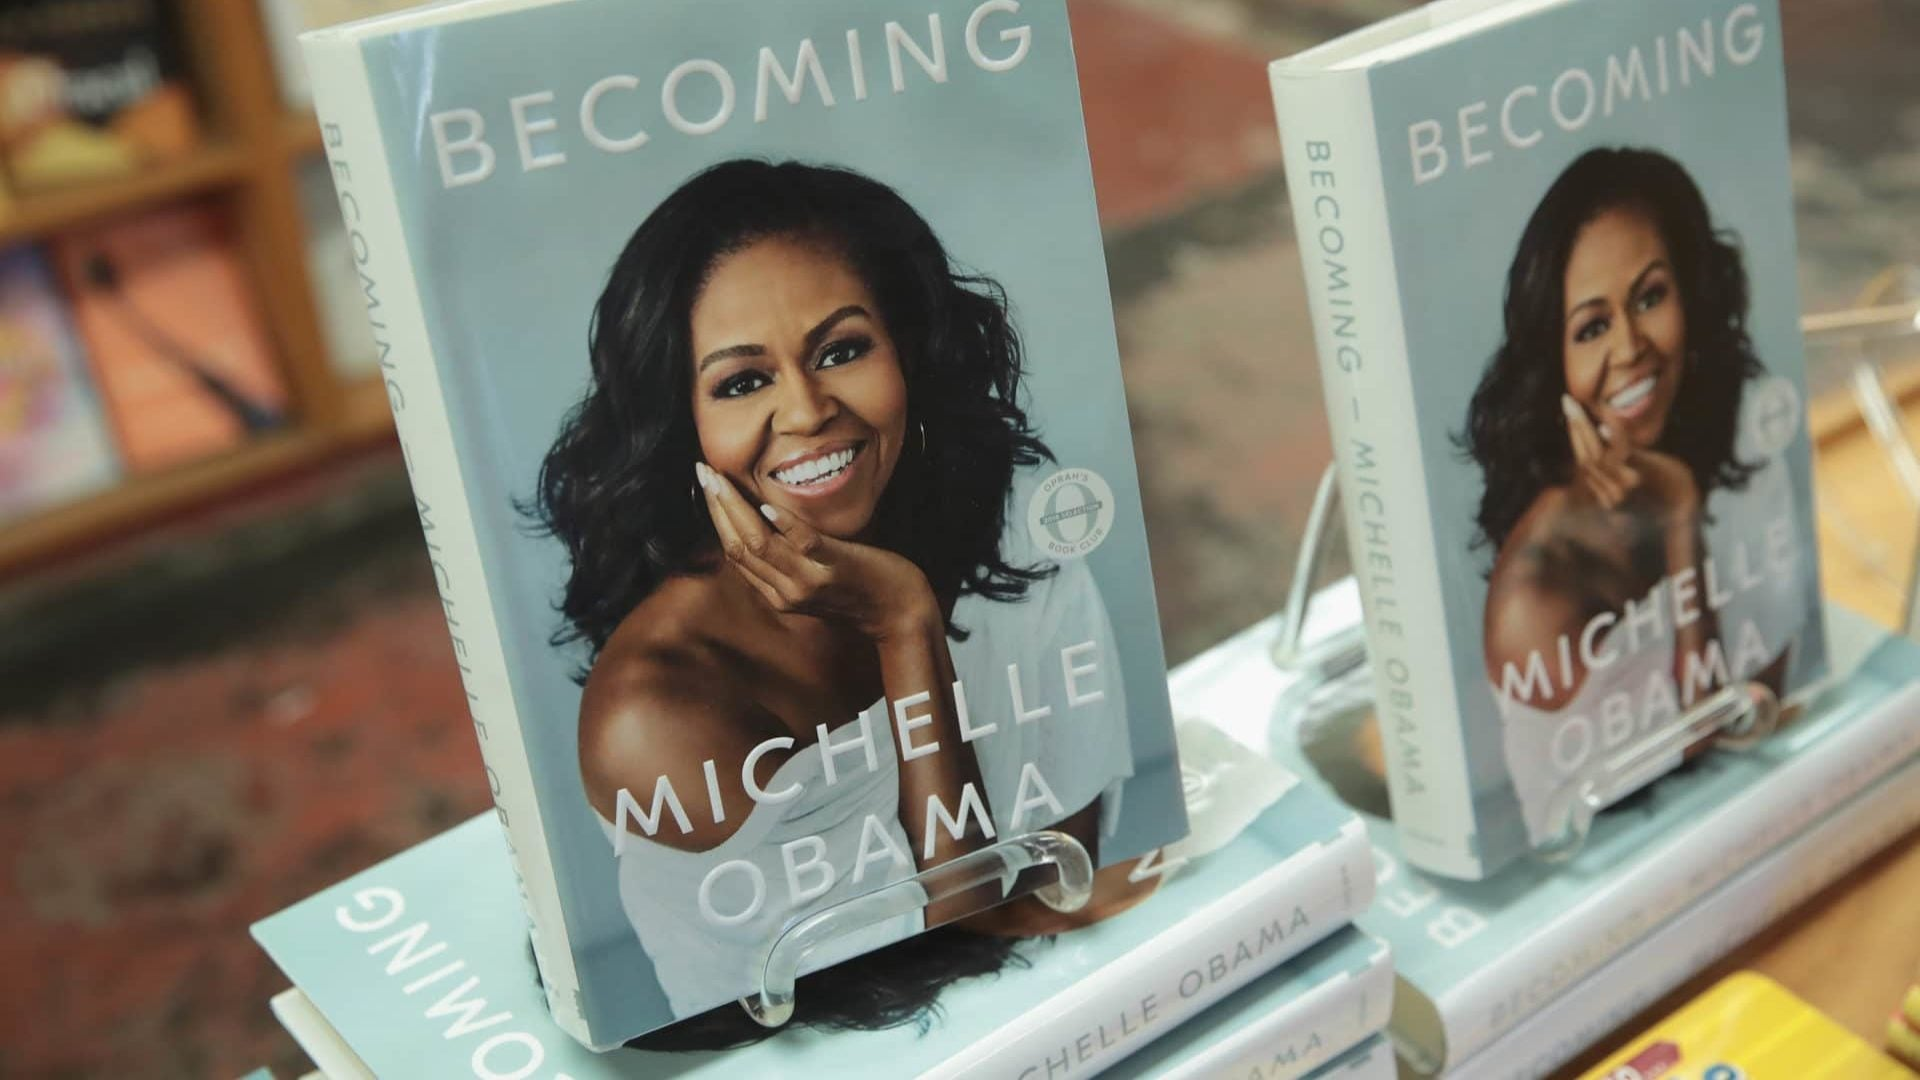 Still Haven't Picked Up Michelle Obama's 'Becoming'? Then Check Out This Exclusive Snippet